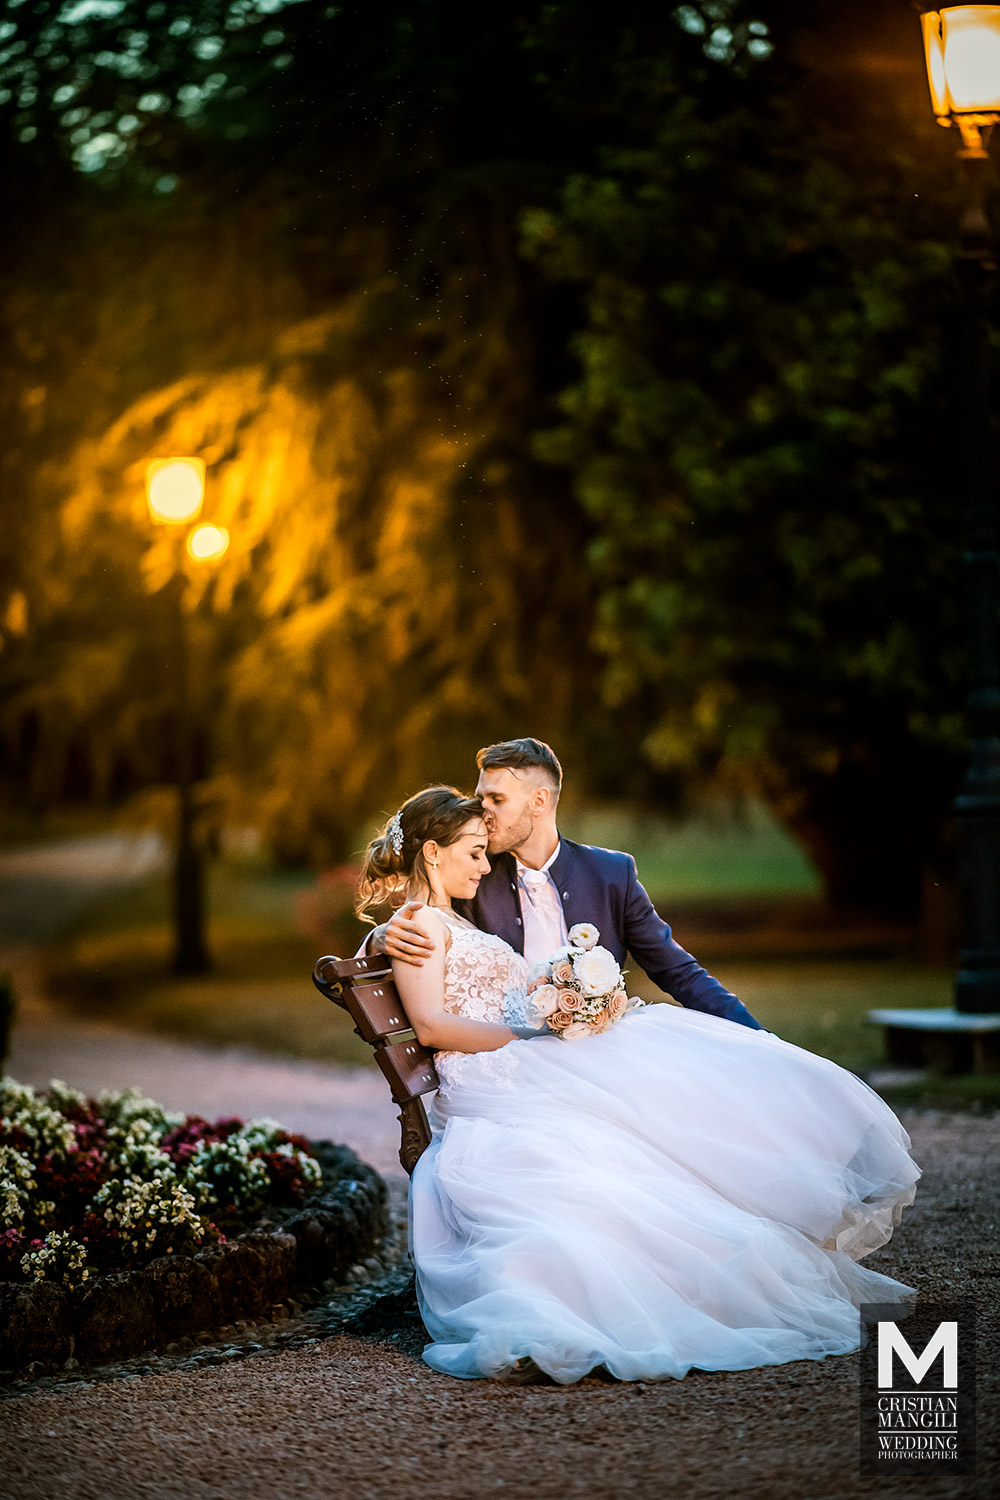 italian-wedding-photographer-bride-and-groom-kissing-bench